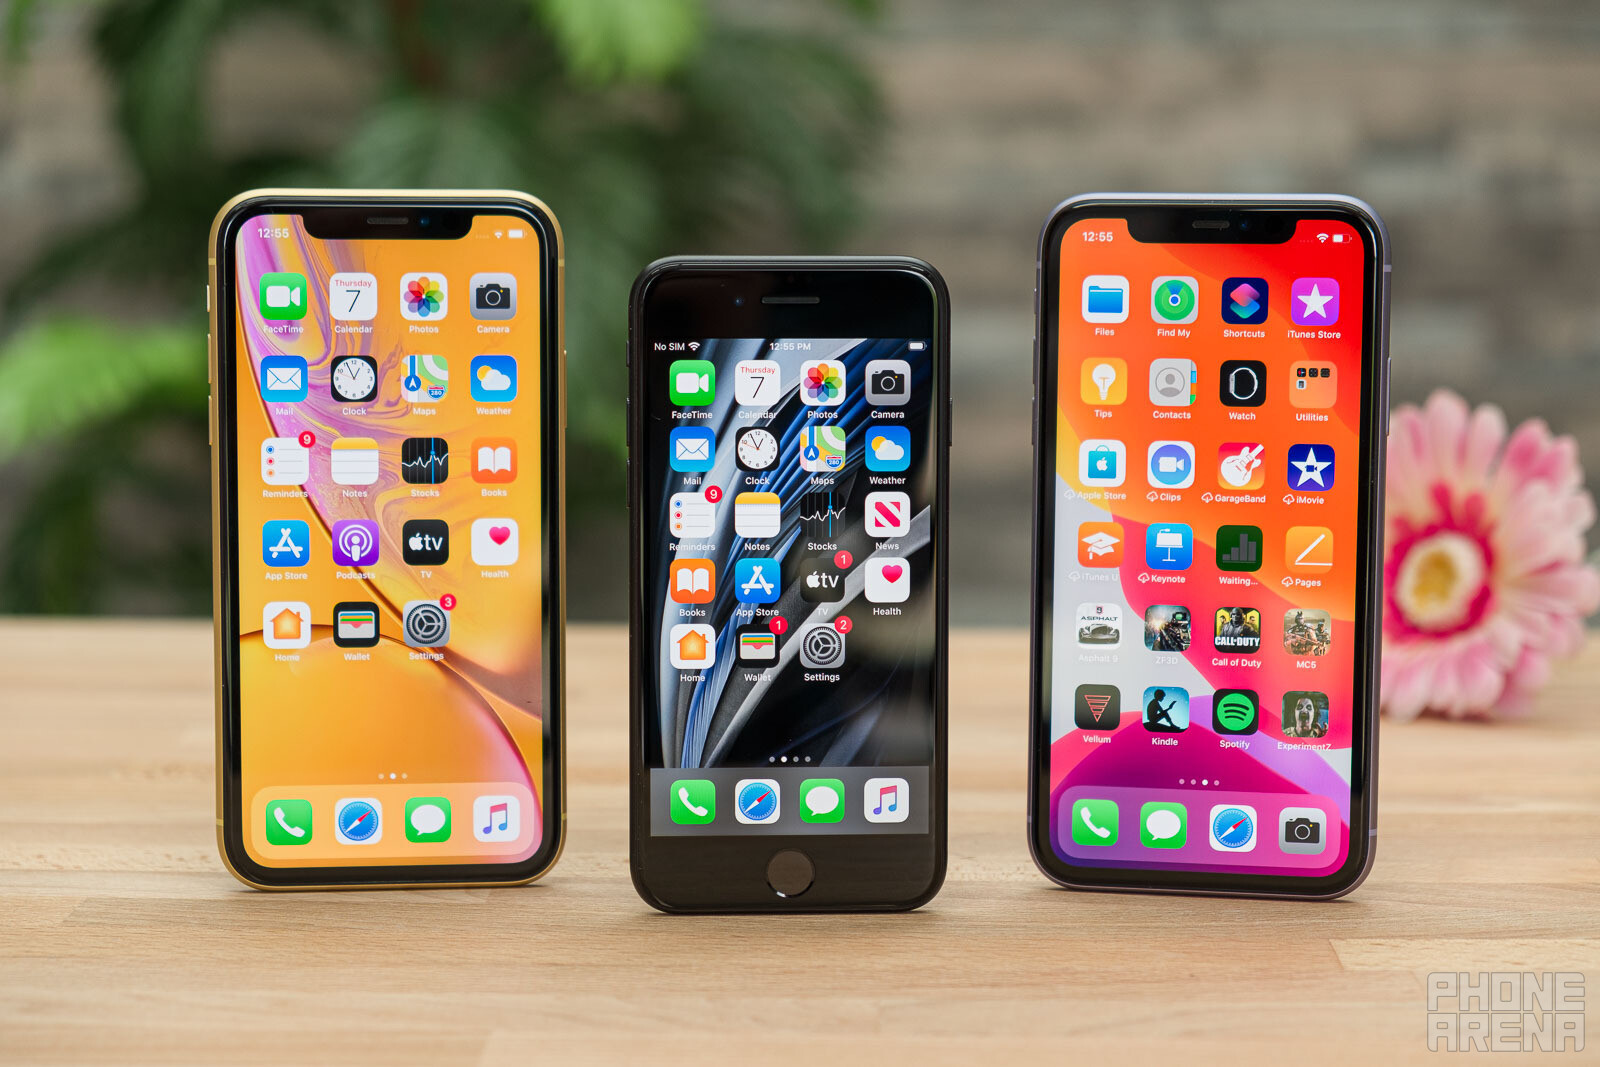 Apple-iPhone-SE-2020-vs-iPhone-XR-vs-iPhone-11-001.jpg